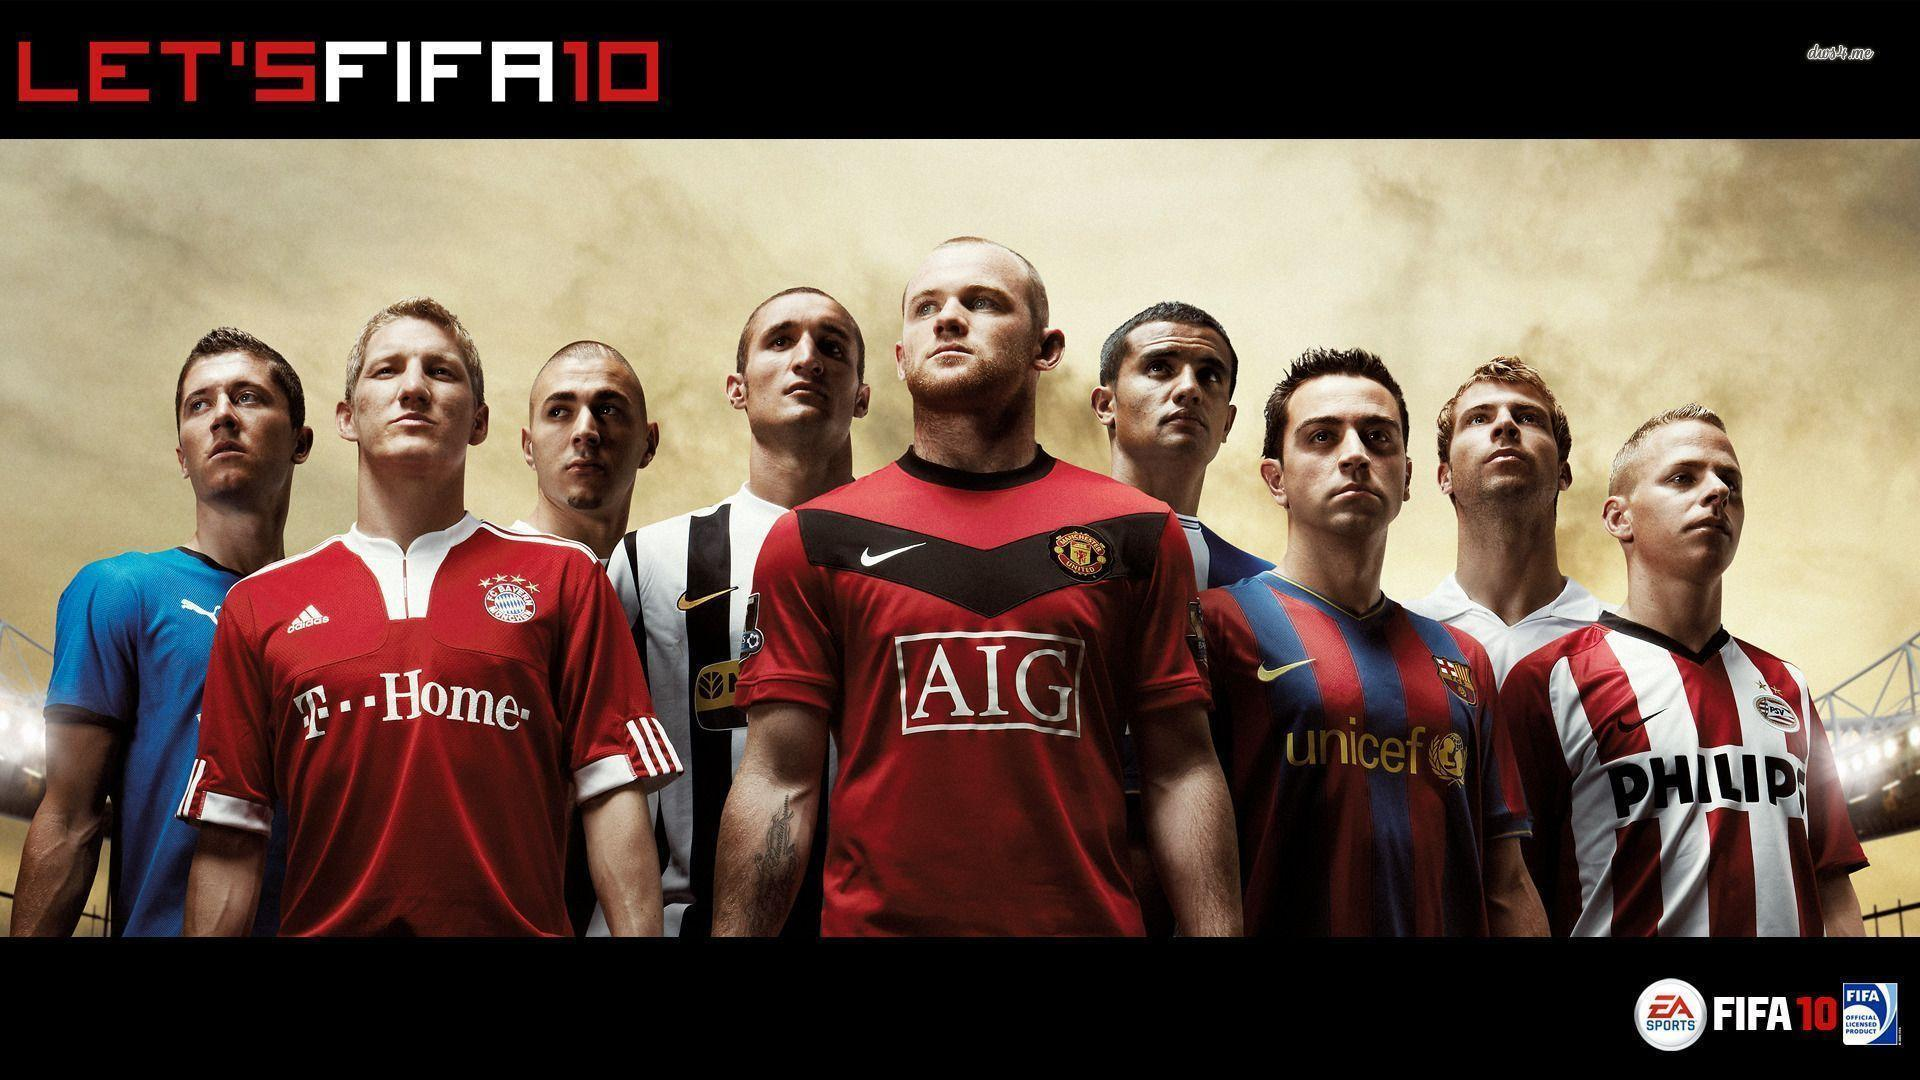 FIFA Wallpapers (9315) - Download Game Wallpapers HD Widescreen